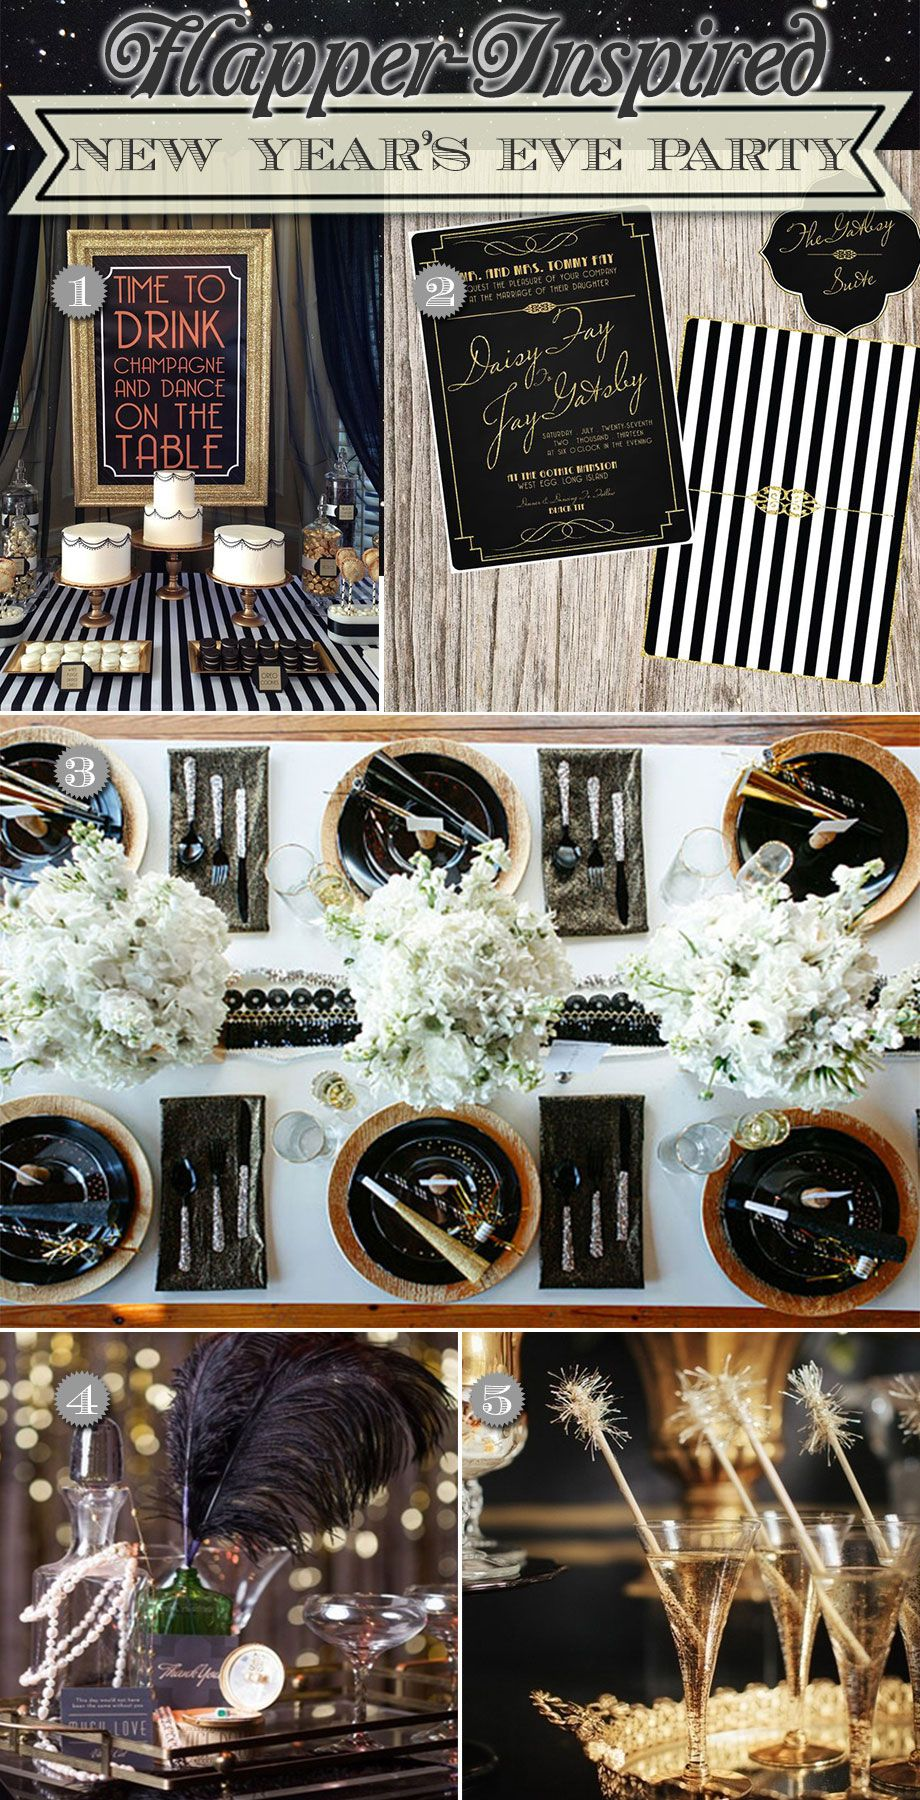 Great gatsby roaring 20s art deco on pinterest for 1920 party decoration ideas